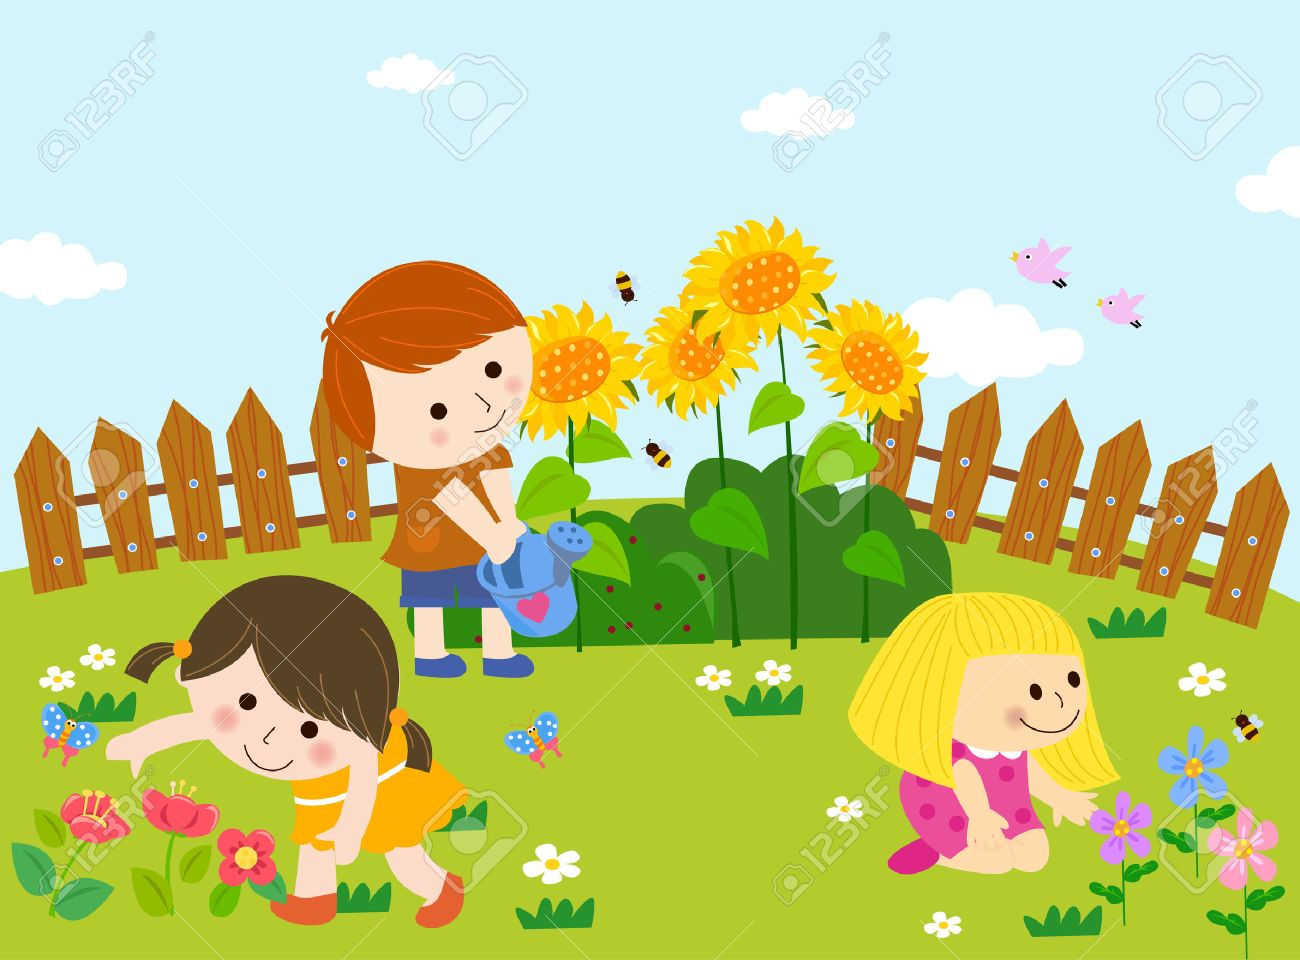 Kids Playing In Garden Clipart.